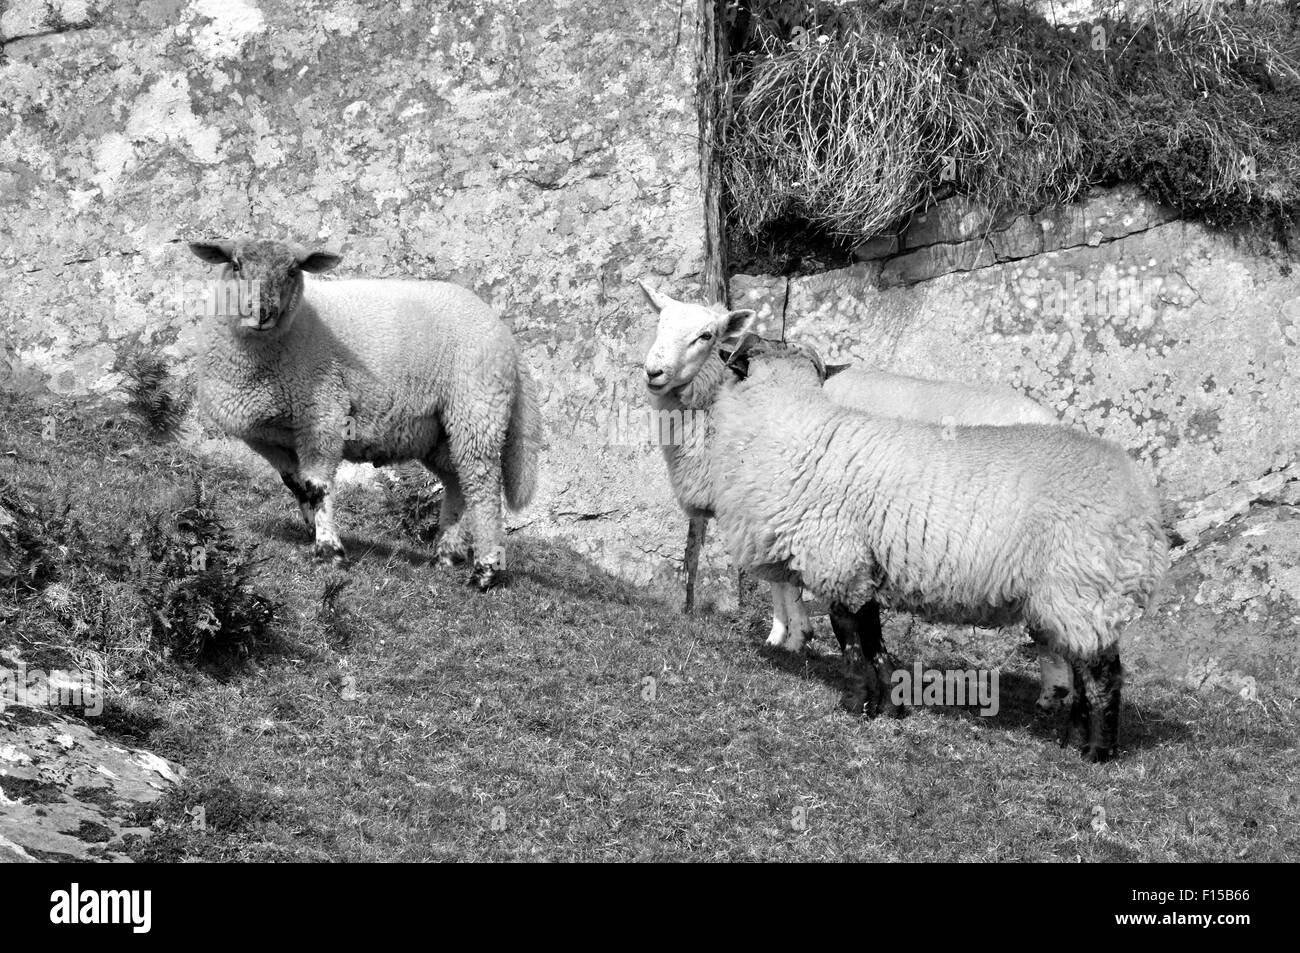 Sheep in rocky landscape,West Cork,Ireland (black and white) - Stock Image